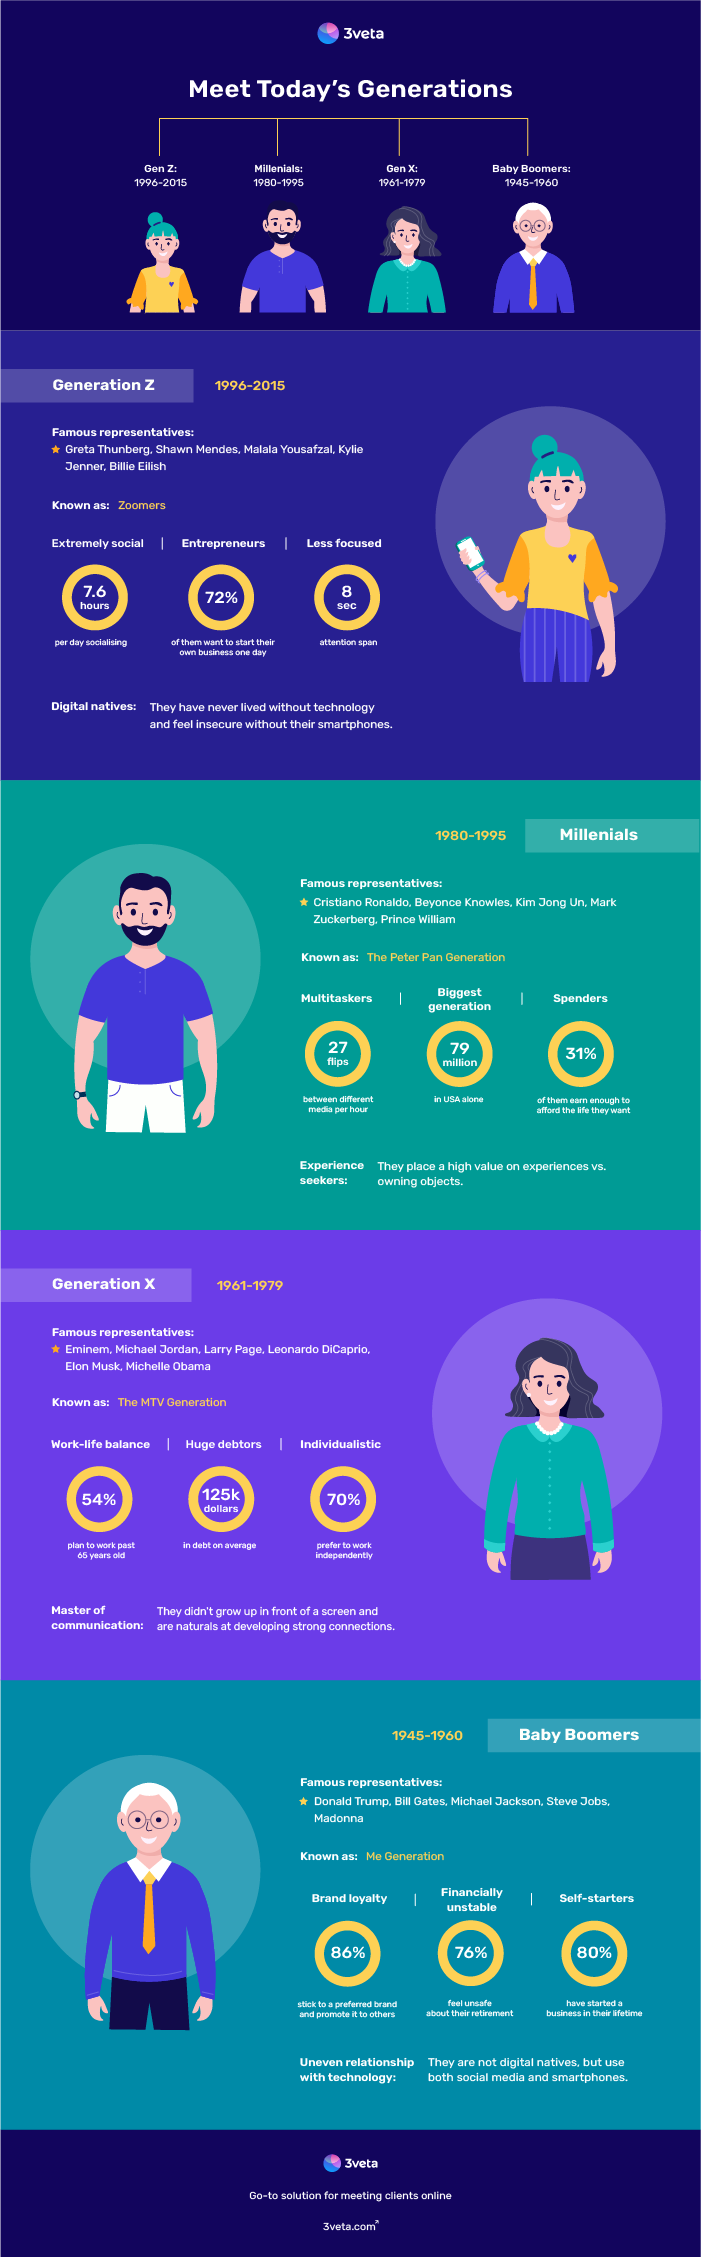 Meet Today's Generations and their relationship with online services Infographic